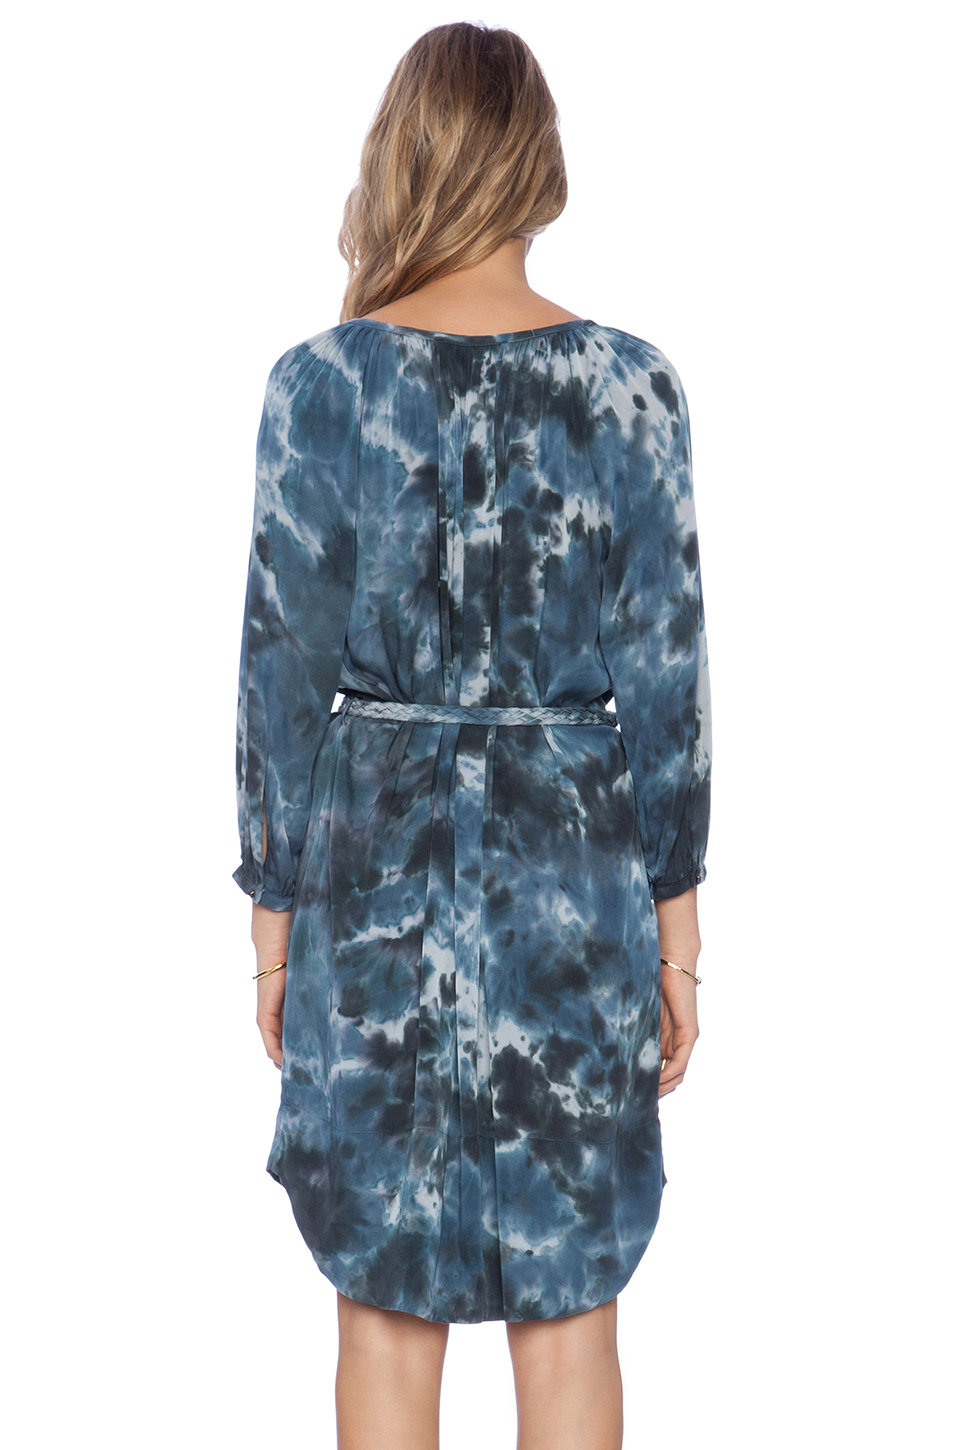 bcd6f124cd099b Lyst - Gypsy 05 Silk Tunic Dress in Blue